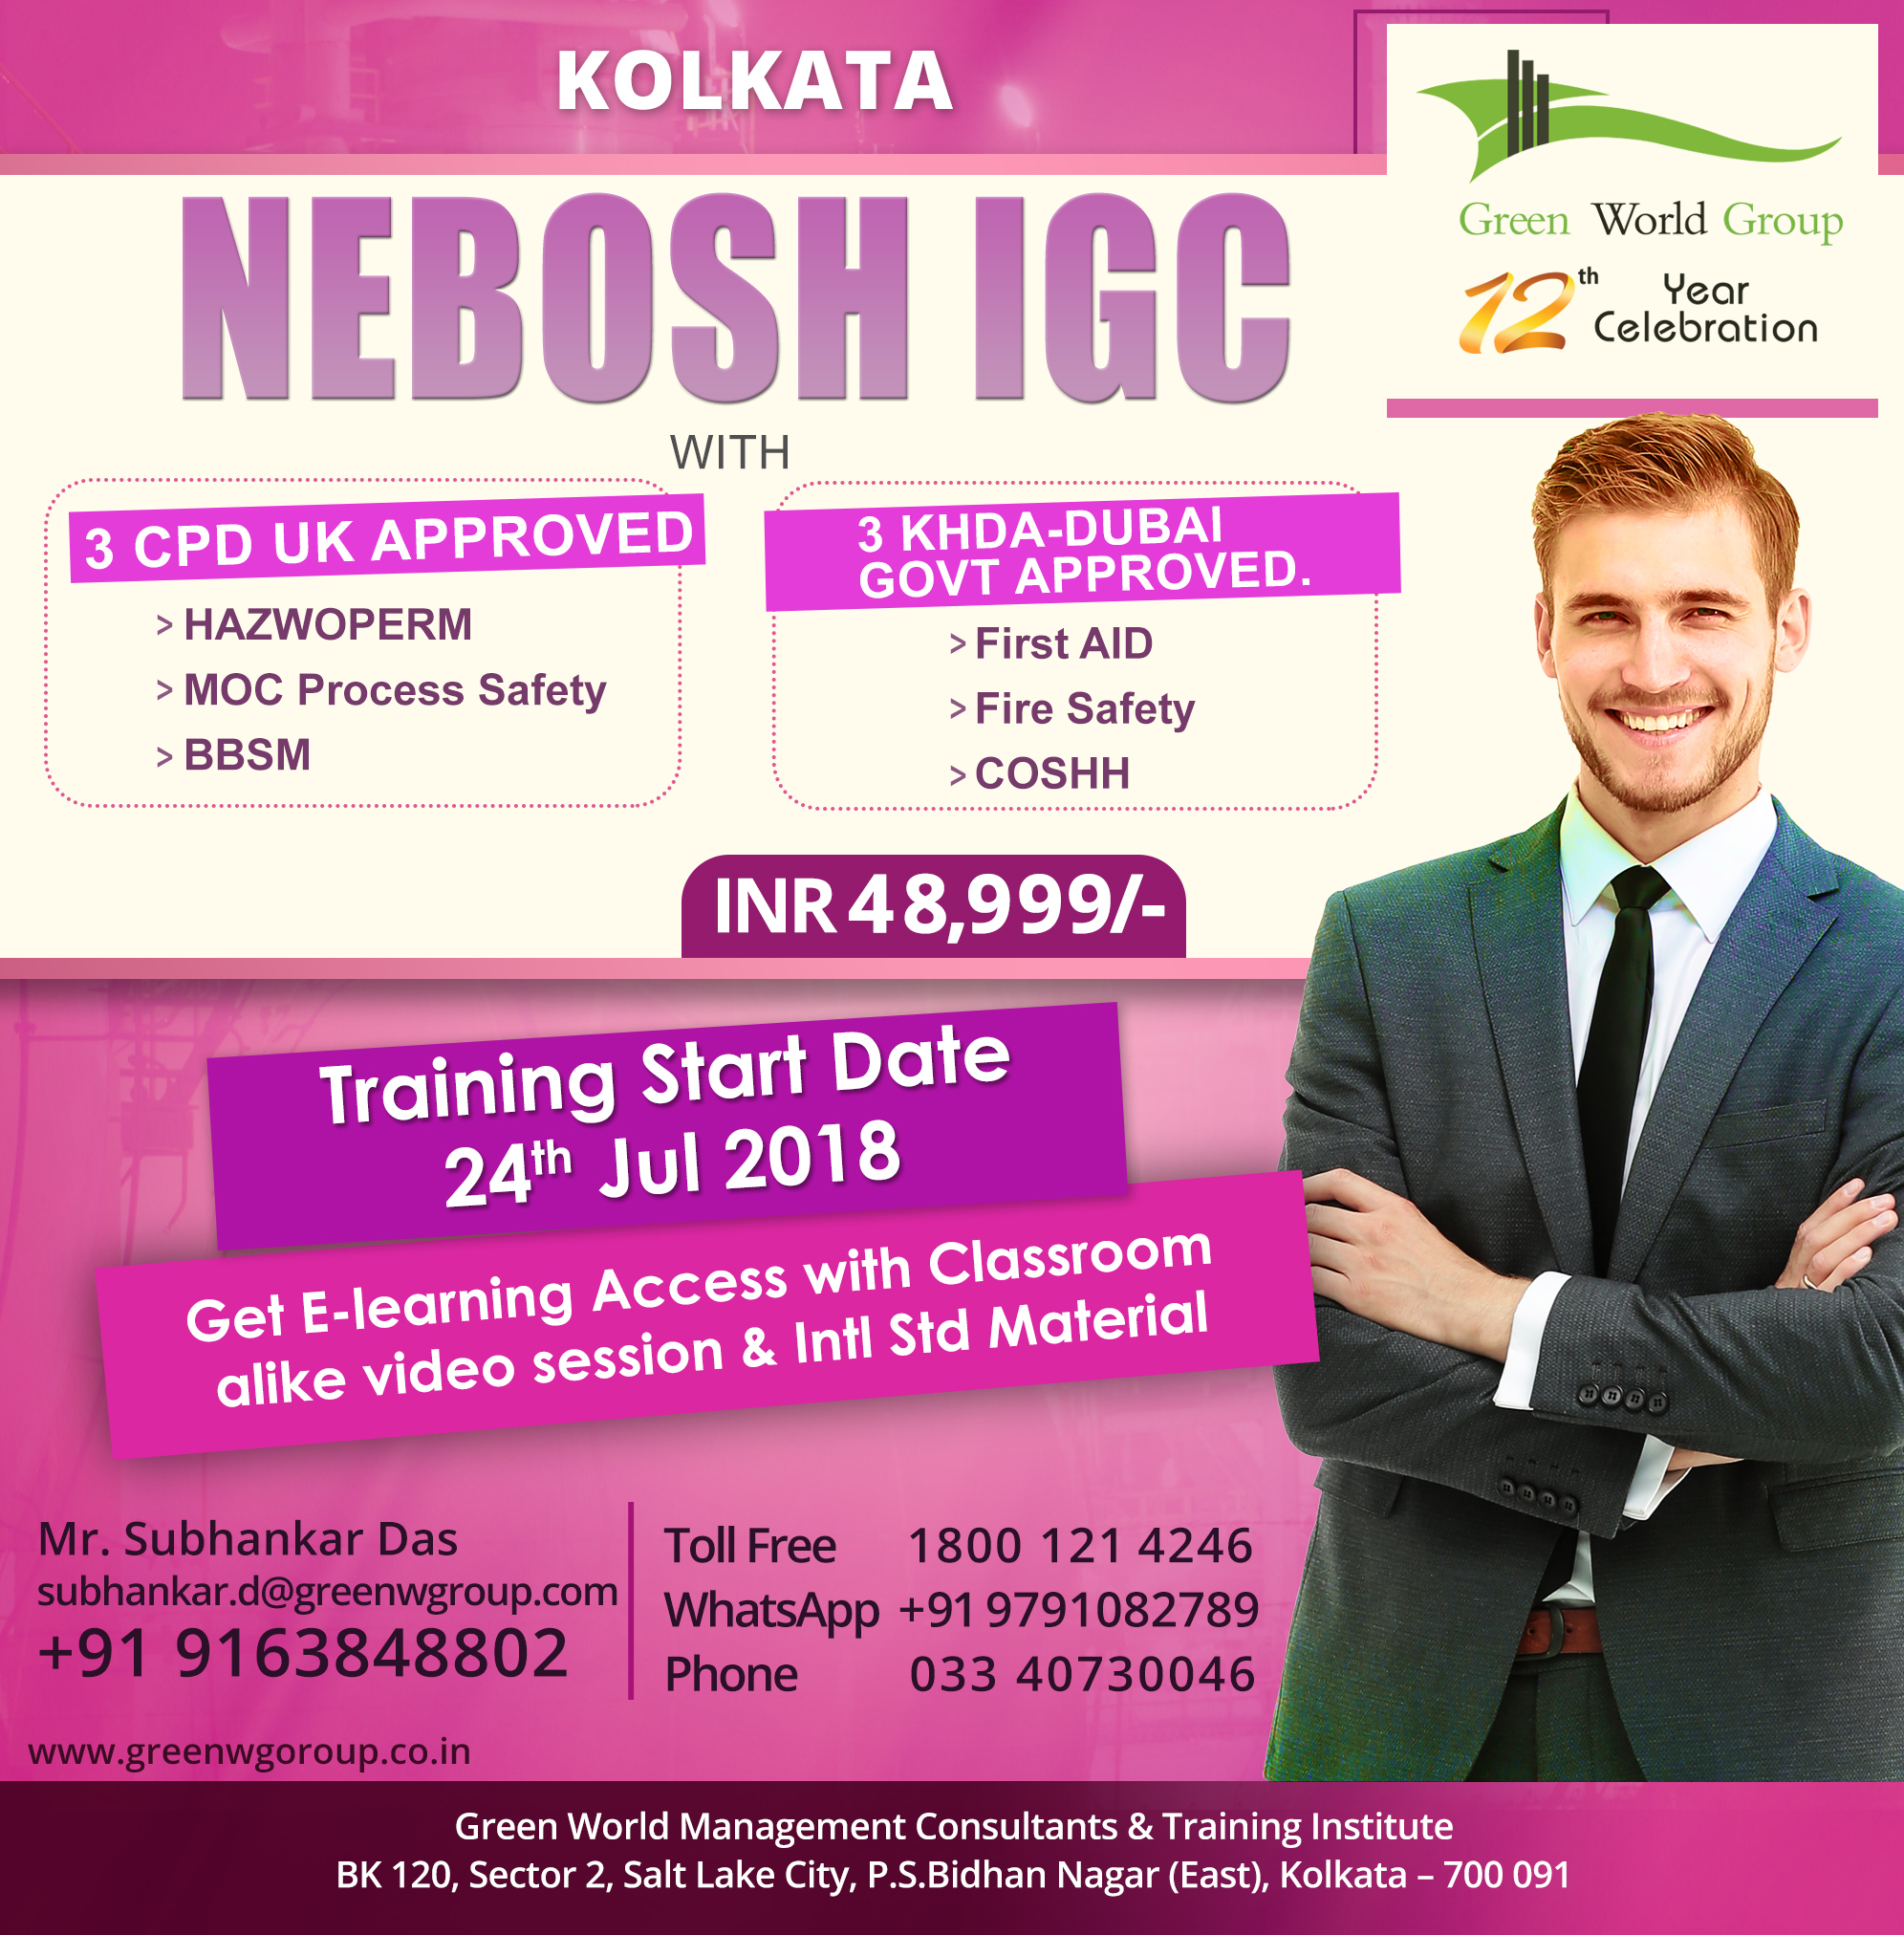 NEBOSH-IGC course in Kolkata